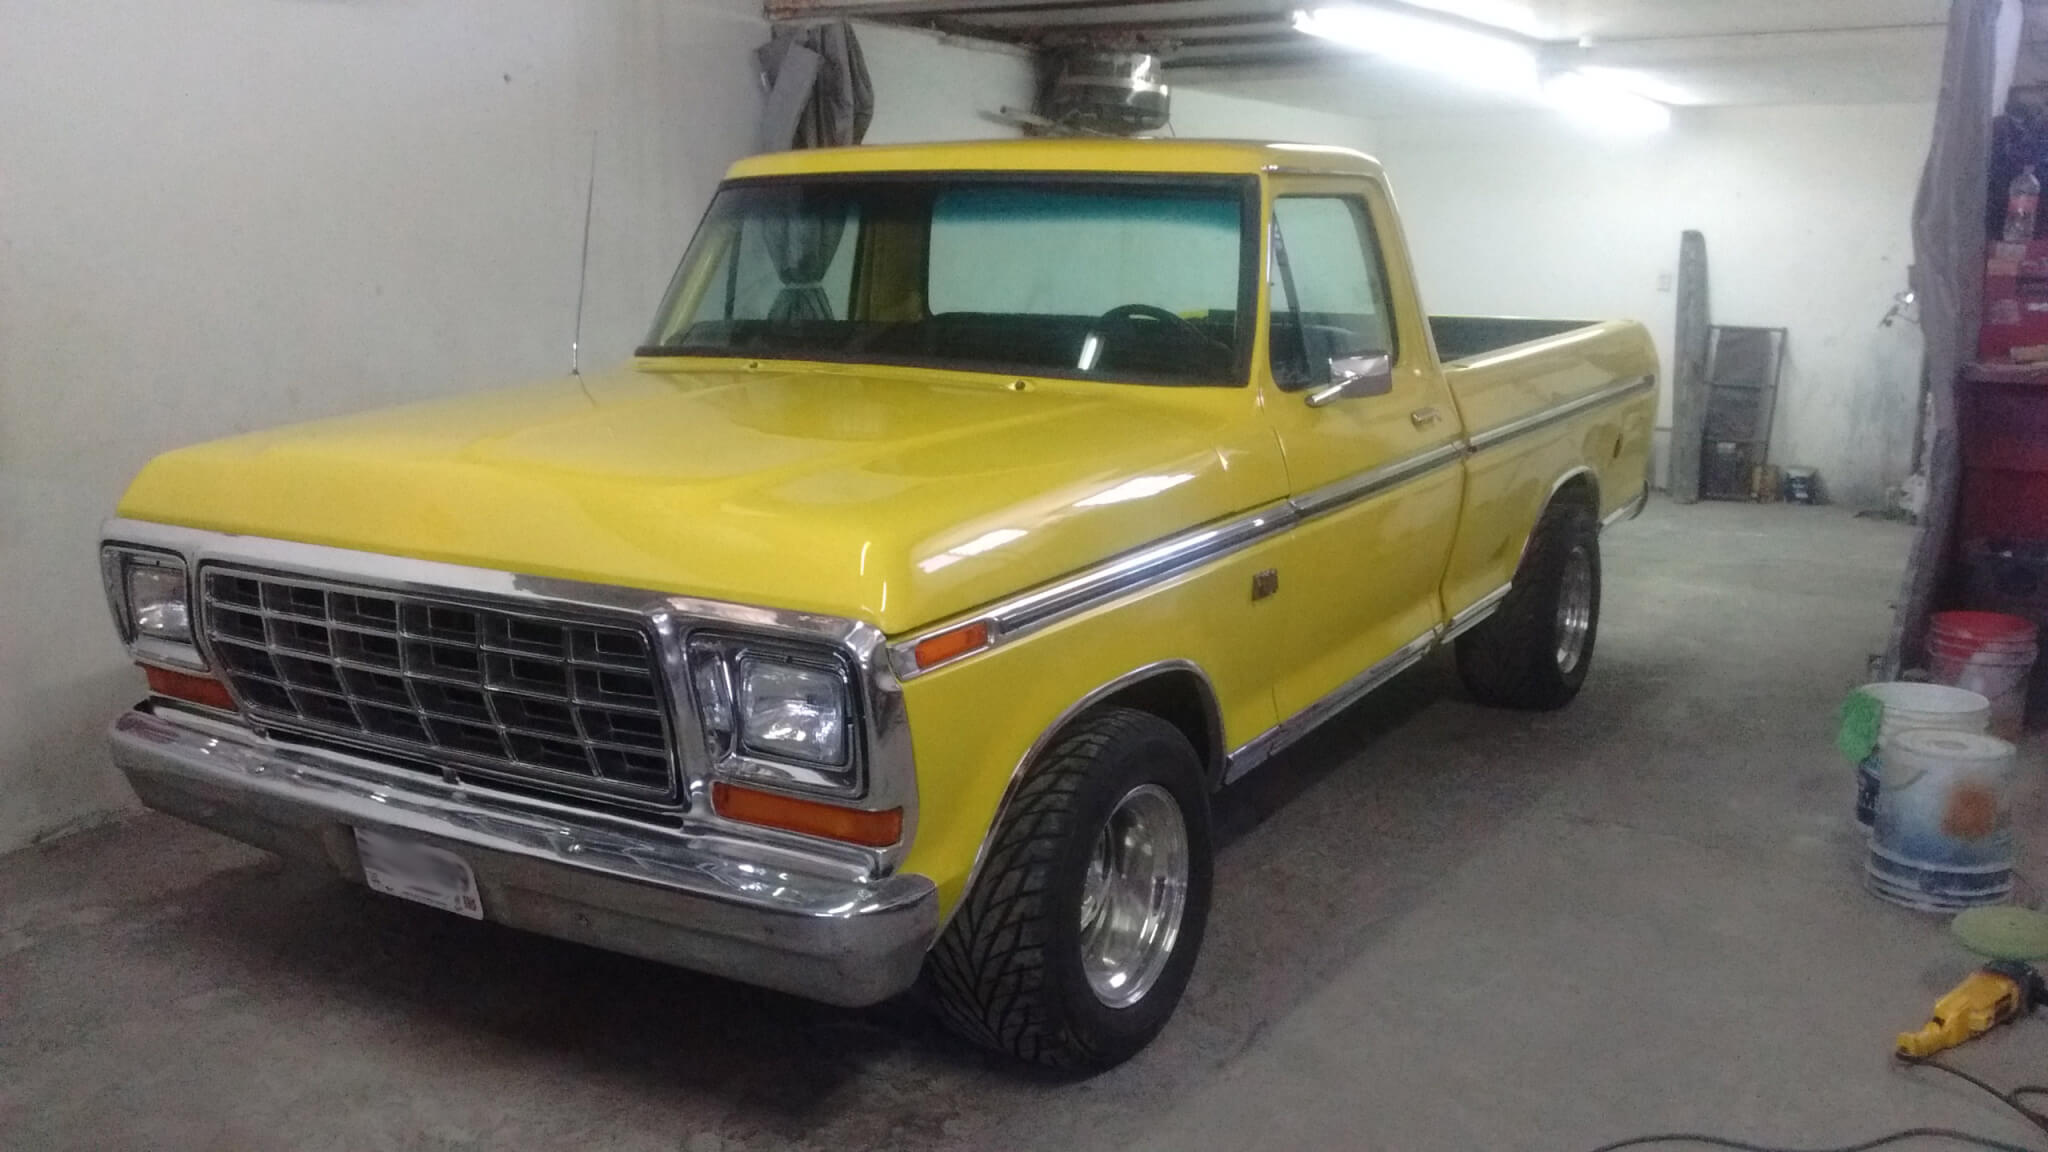 Chevy Truck Wheels >> 1979 Ford F150 - LMC Truck Life